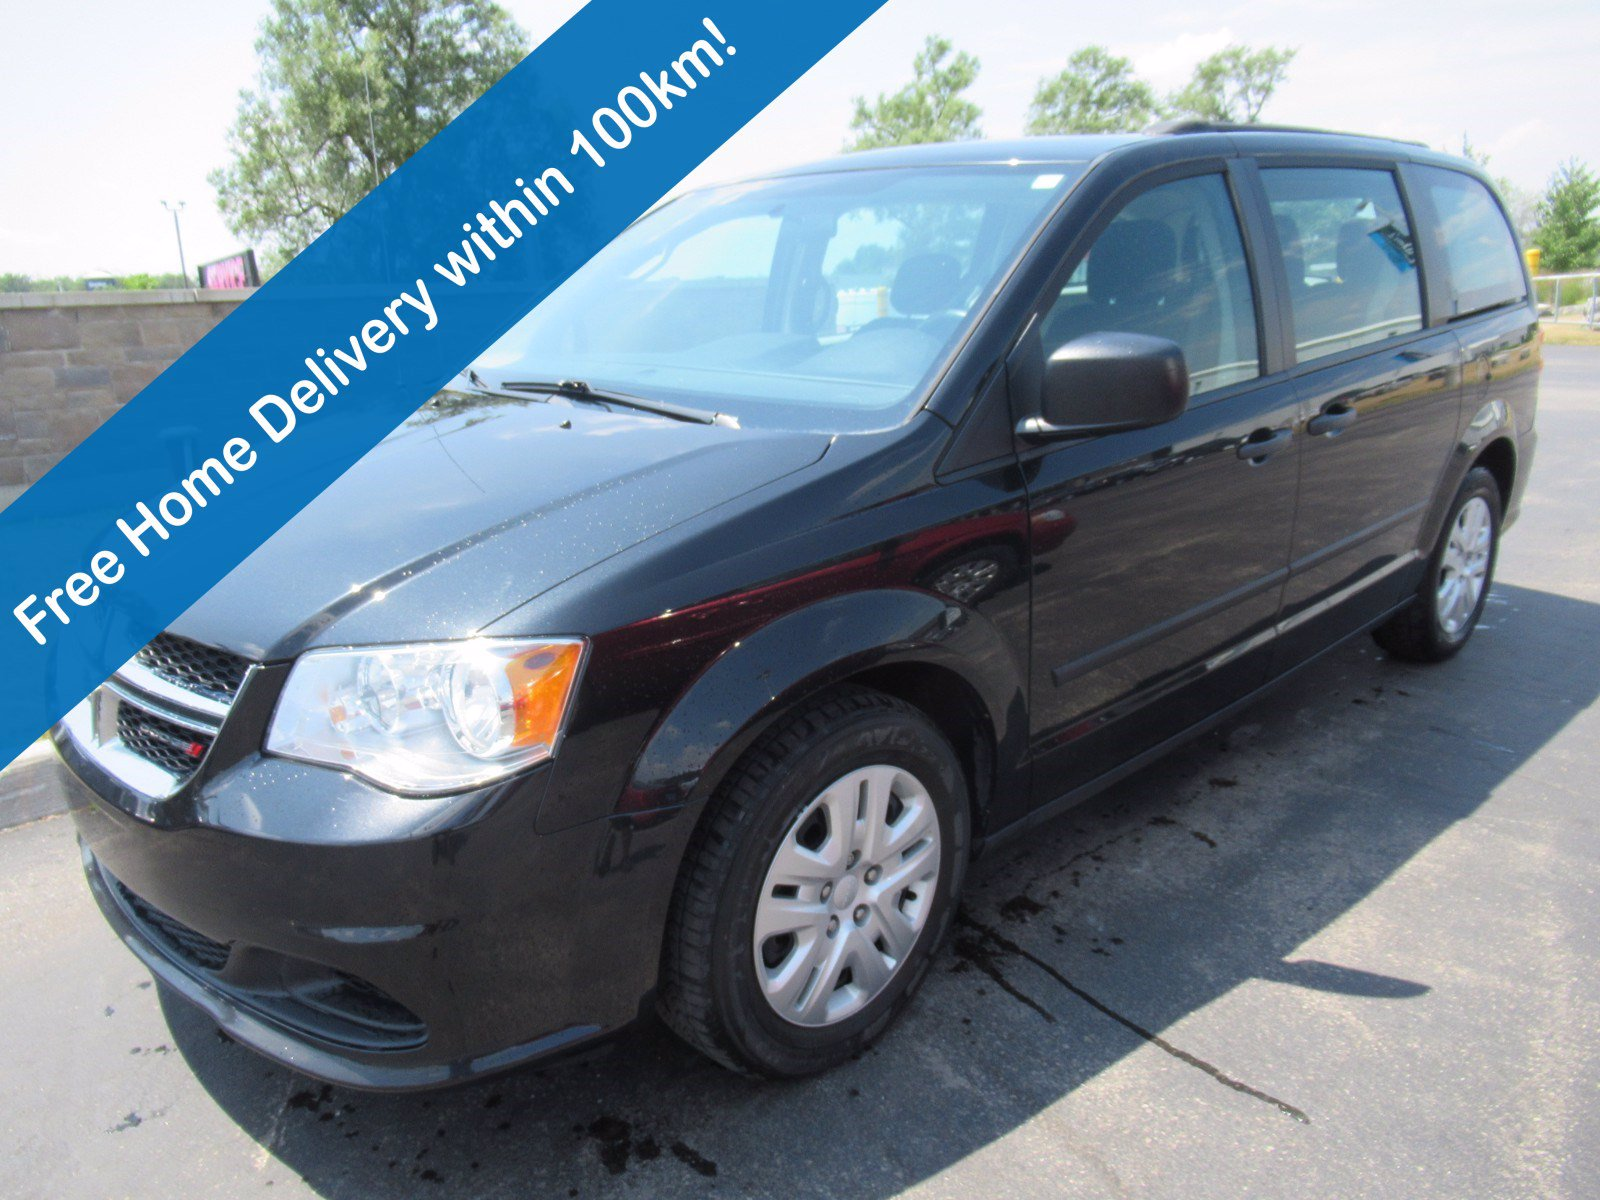 Certified Pre-Owned 2016 Dodge Grand Caravan Canada Value Package, One Owner, Cruise Control, Keyless Entry, Air Conditioning & More!